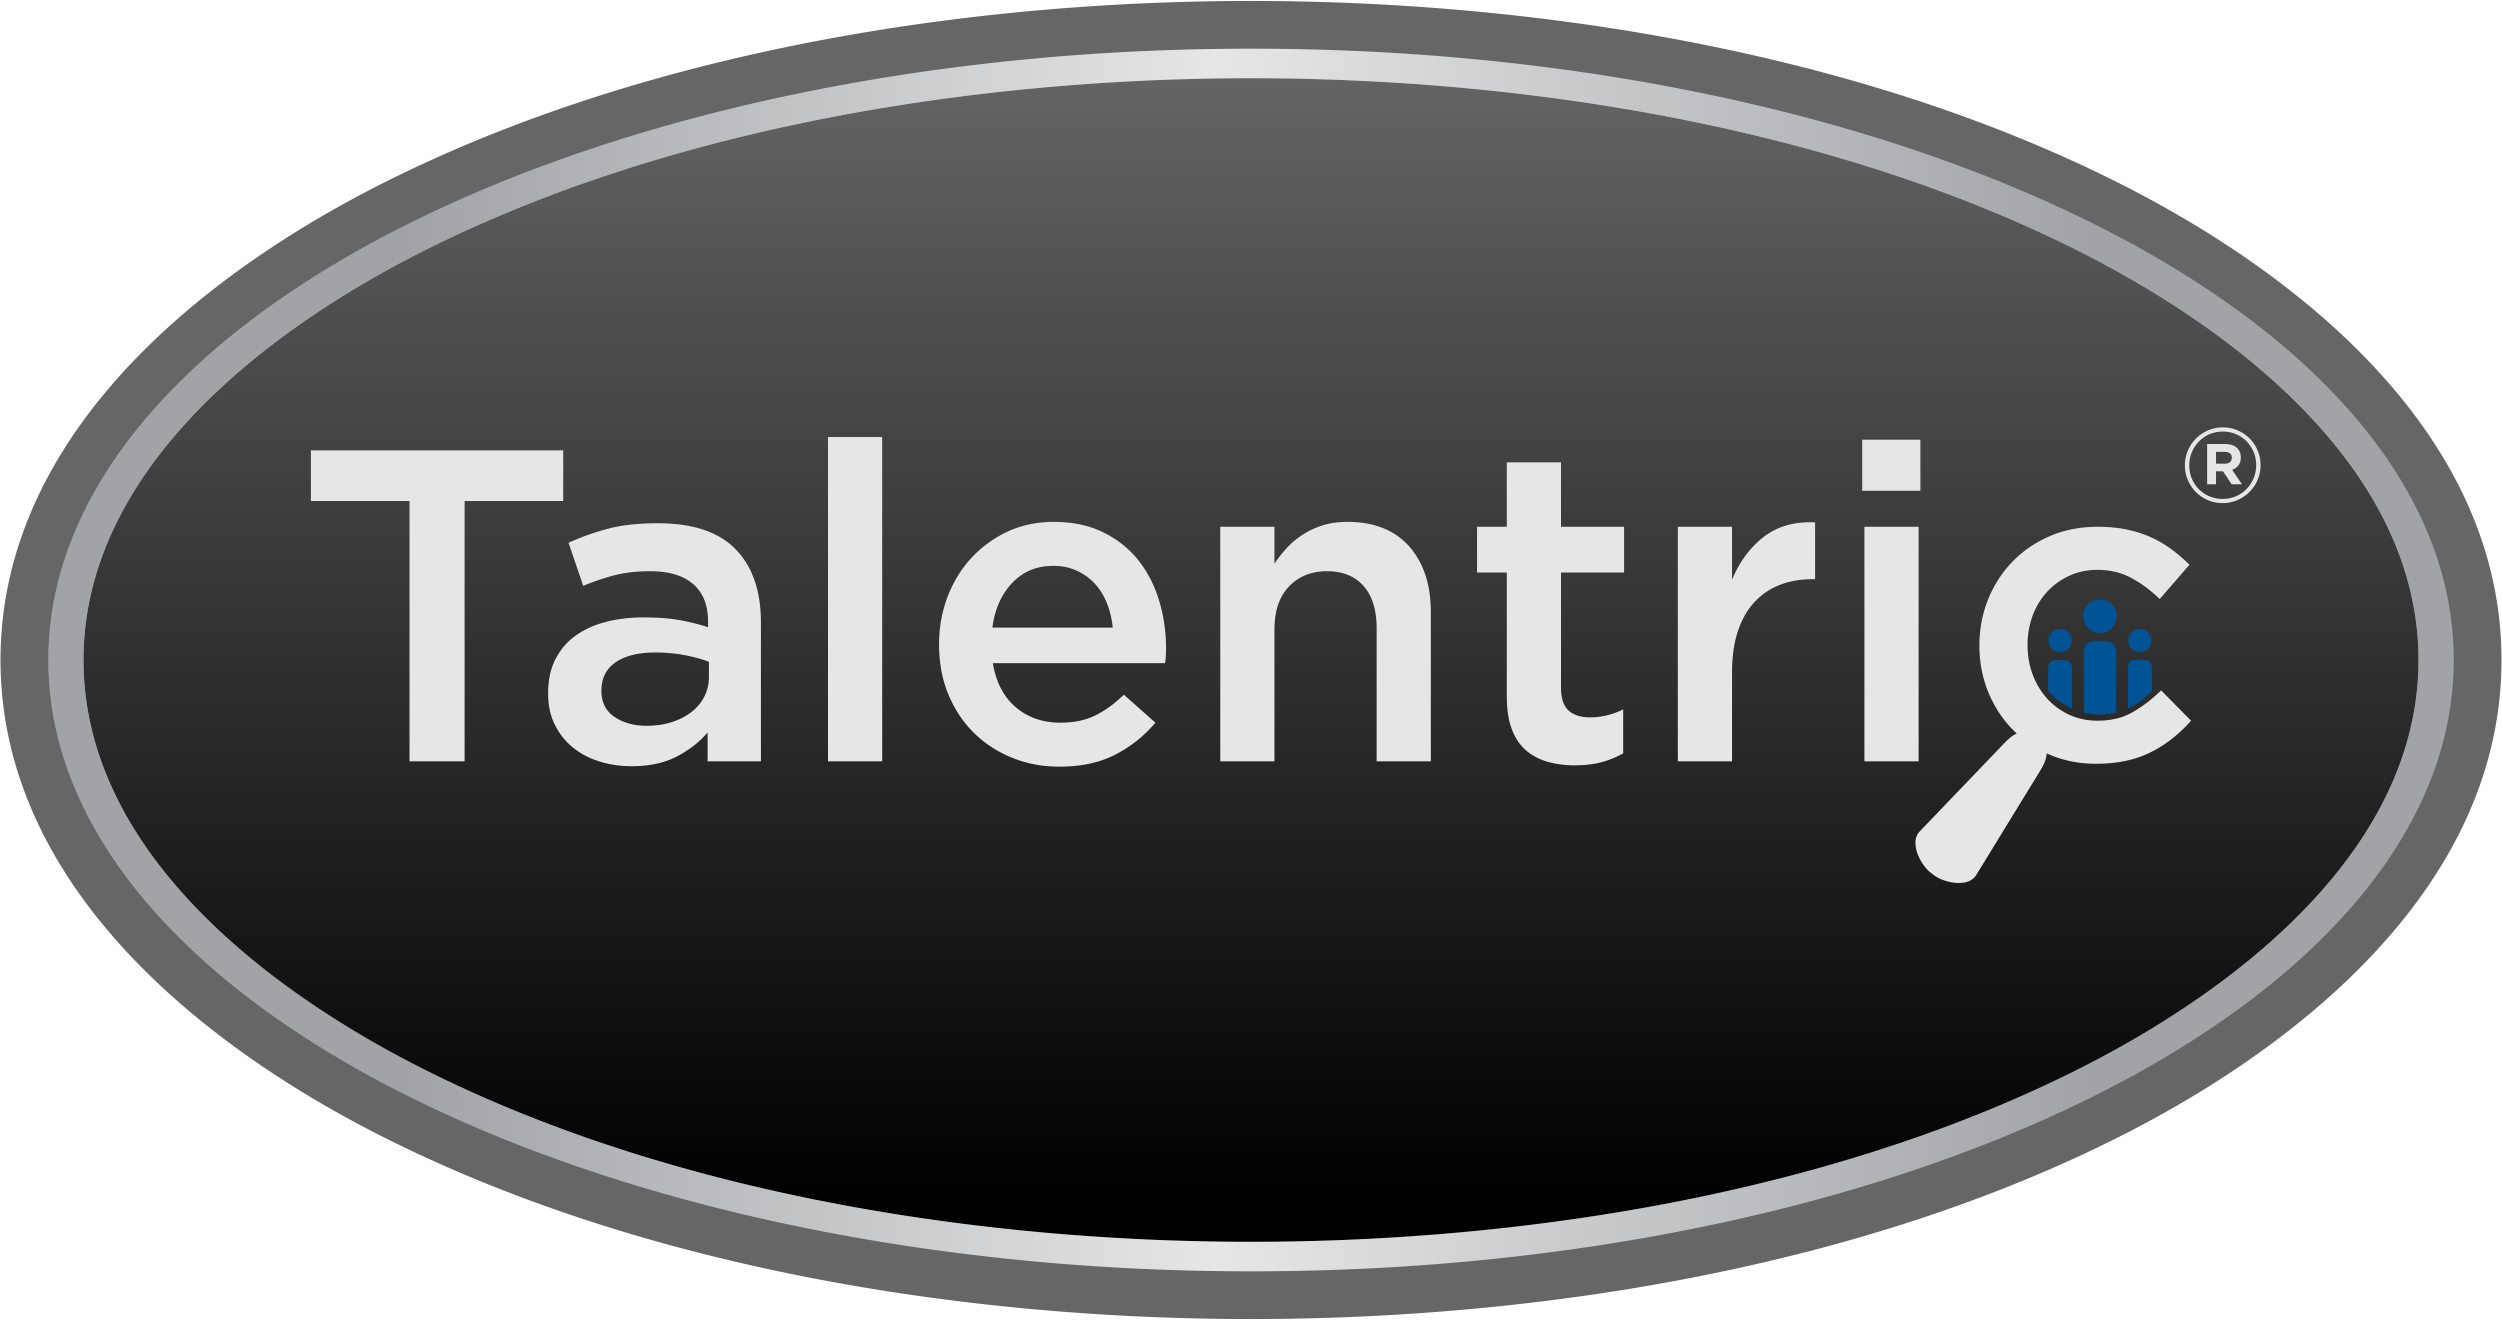 talentric_logo_-_oval_circle_r.png